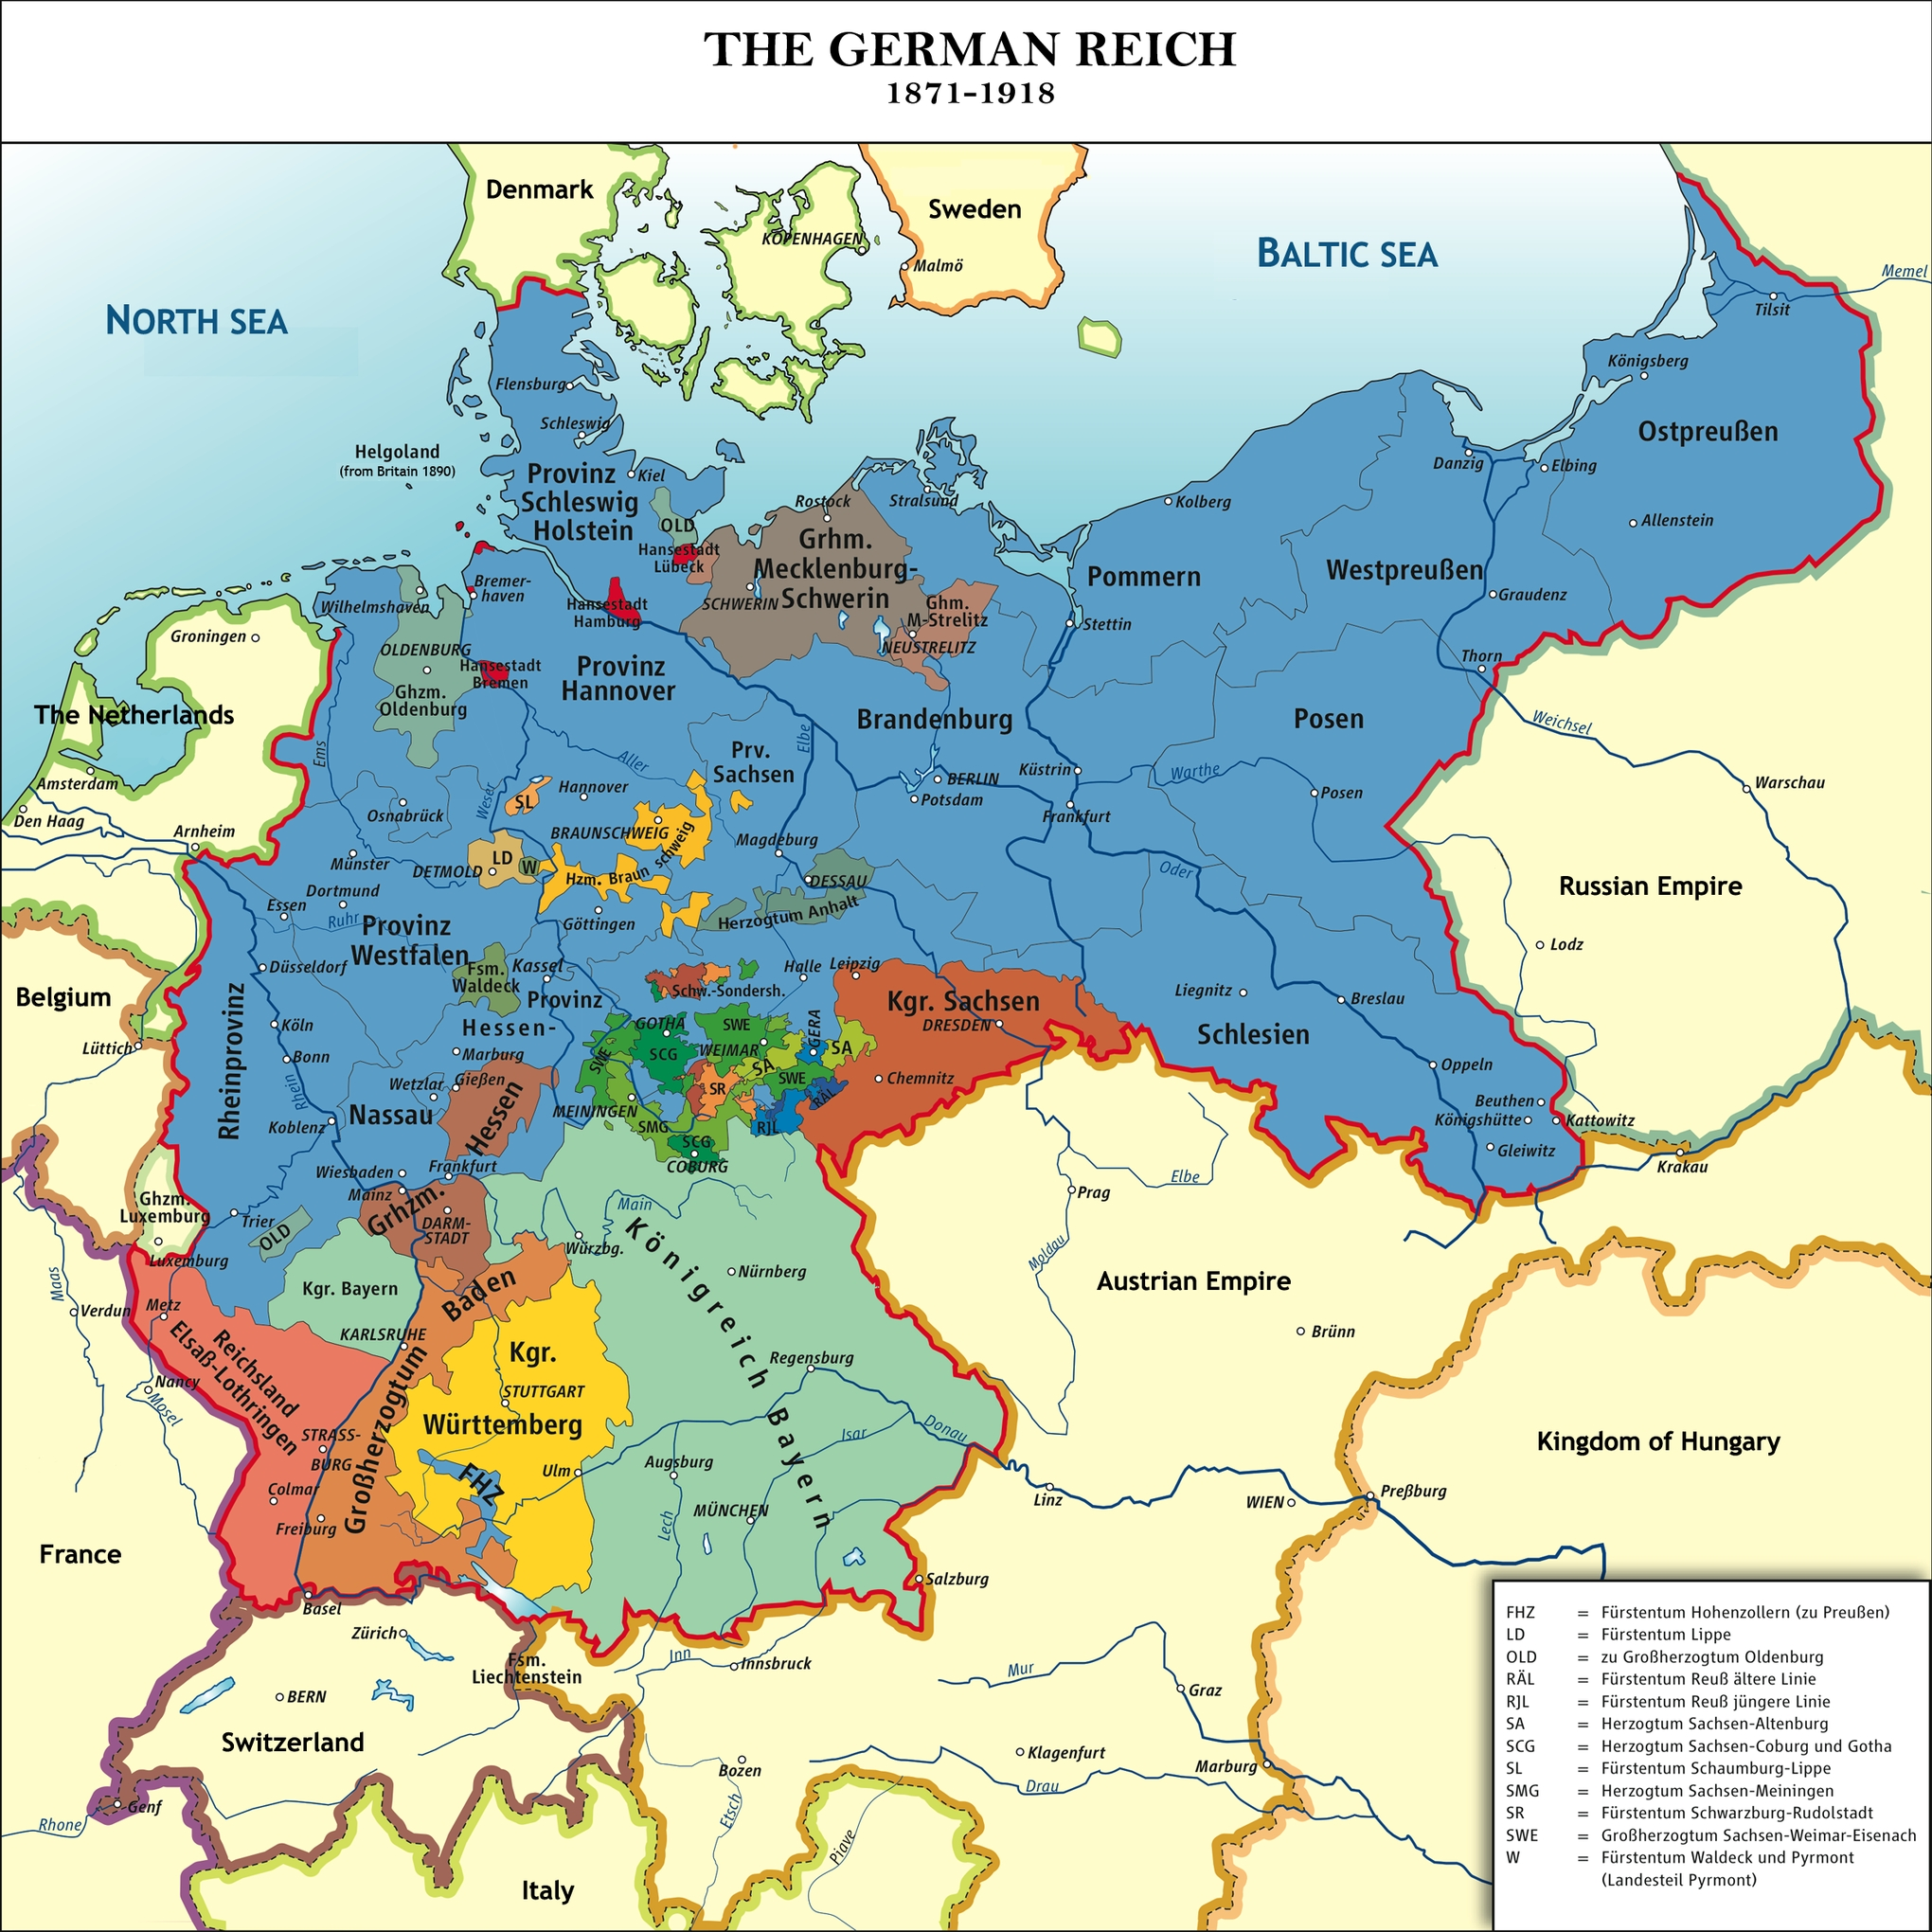 40 Maps That Explain World War I | Vox with Map Of Germany Pre Ww1